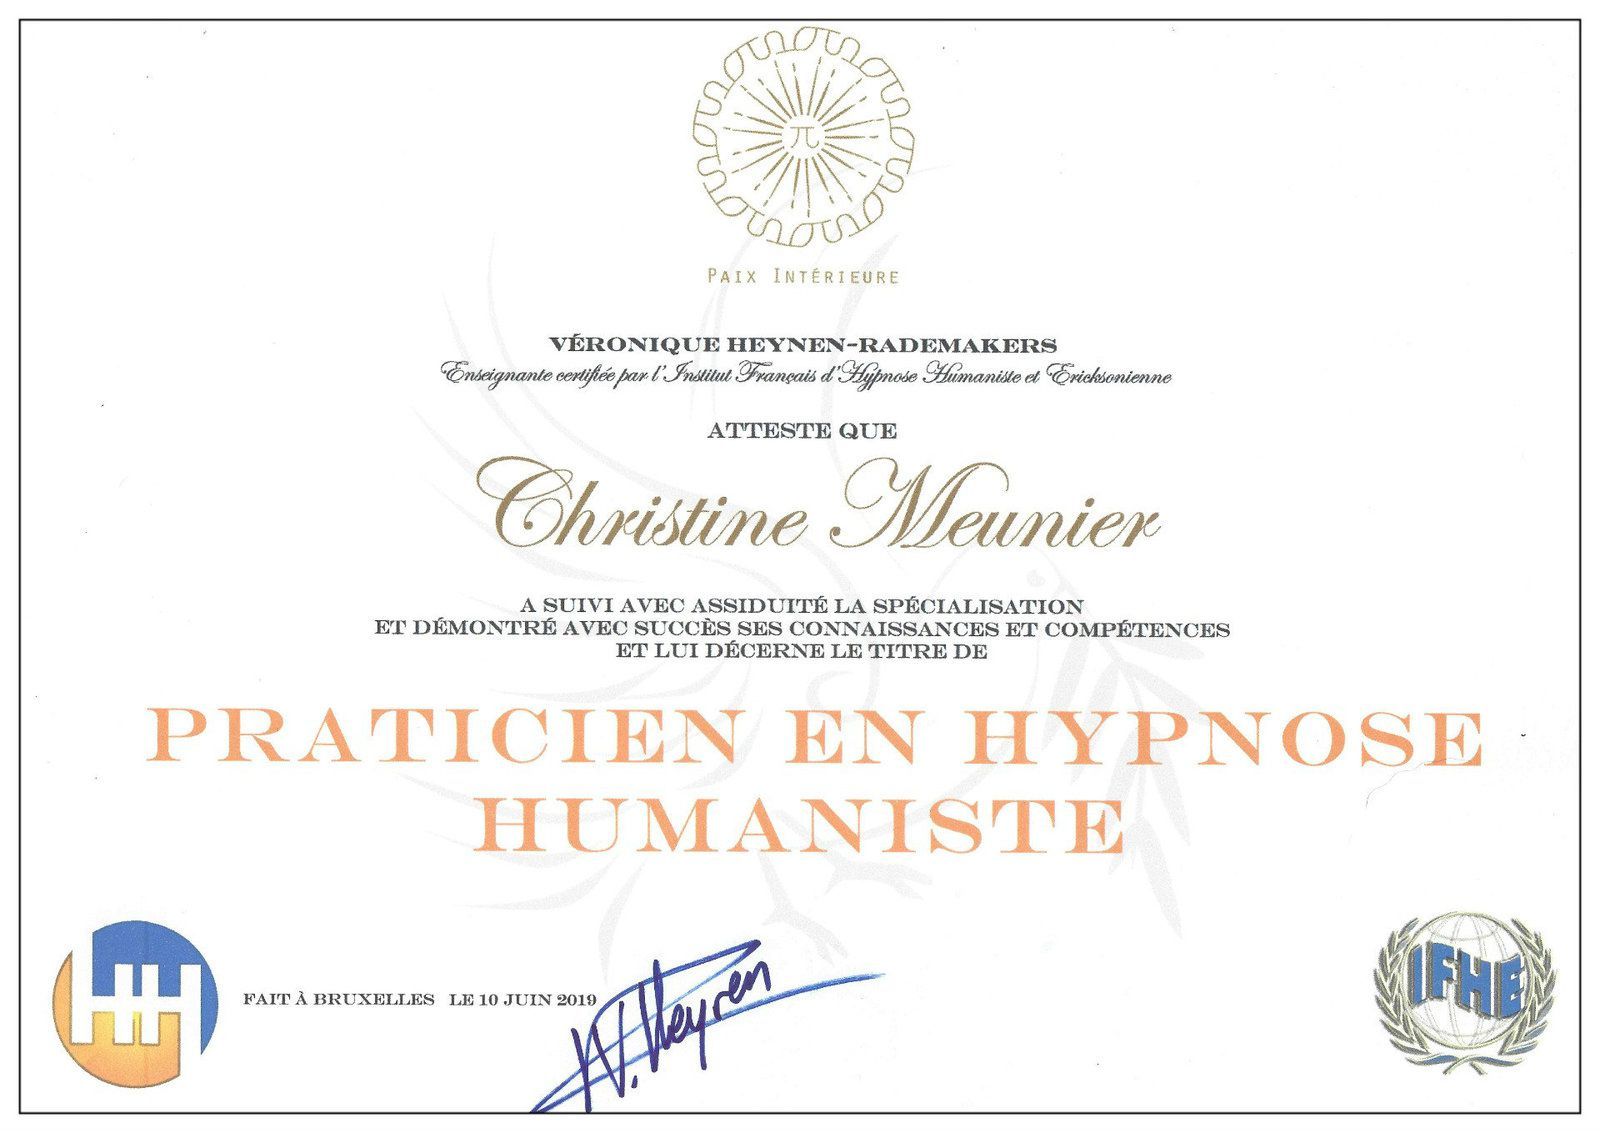 88 - Hypnose Humaniste